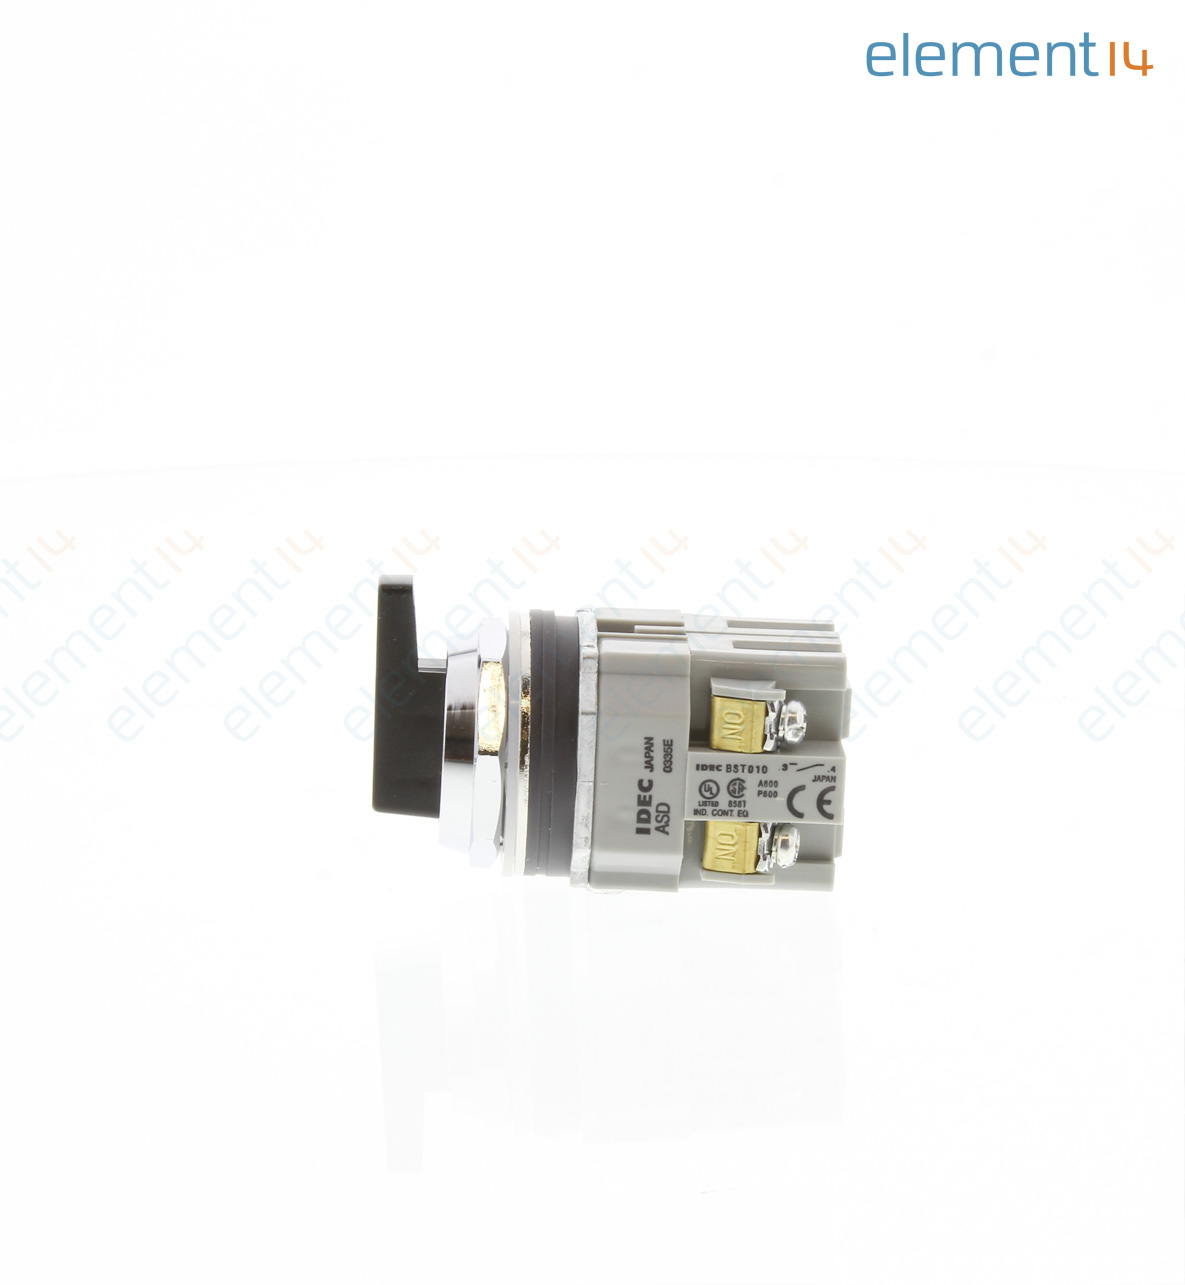 Asd33l20n Idec Rotary Switch 3 Position 2 Pole Electronics Learning Circuits Webonly Products Technology Add To Compare